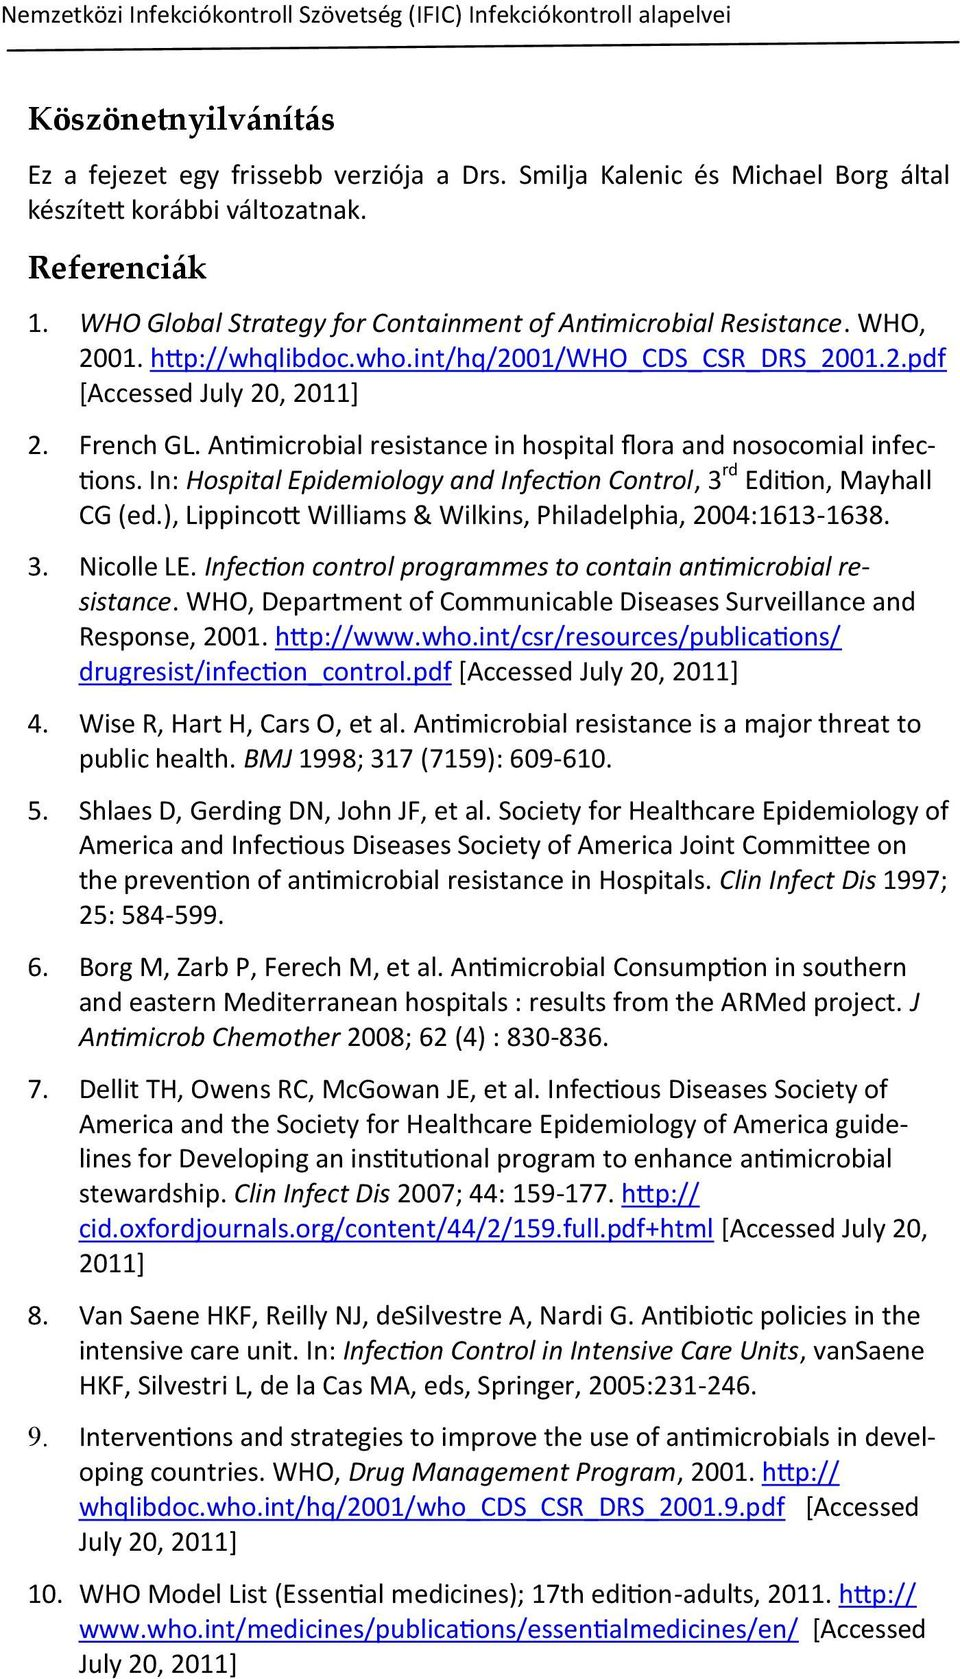 int/hq/2001/who_cds_csr_drs_2001.2.pdf *Accessed July 20, 2011+ 2. French GL. Antimicrobial resistance in hospital flora and nosocomial infections.